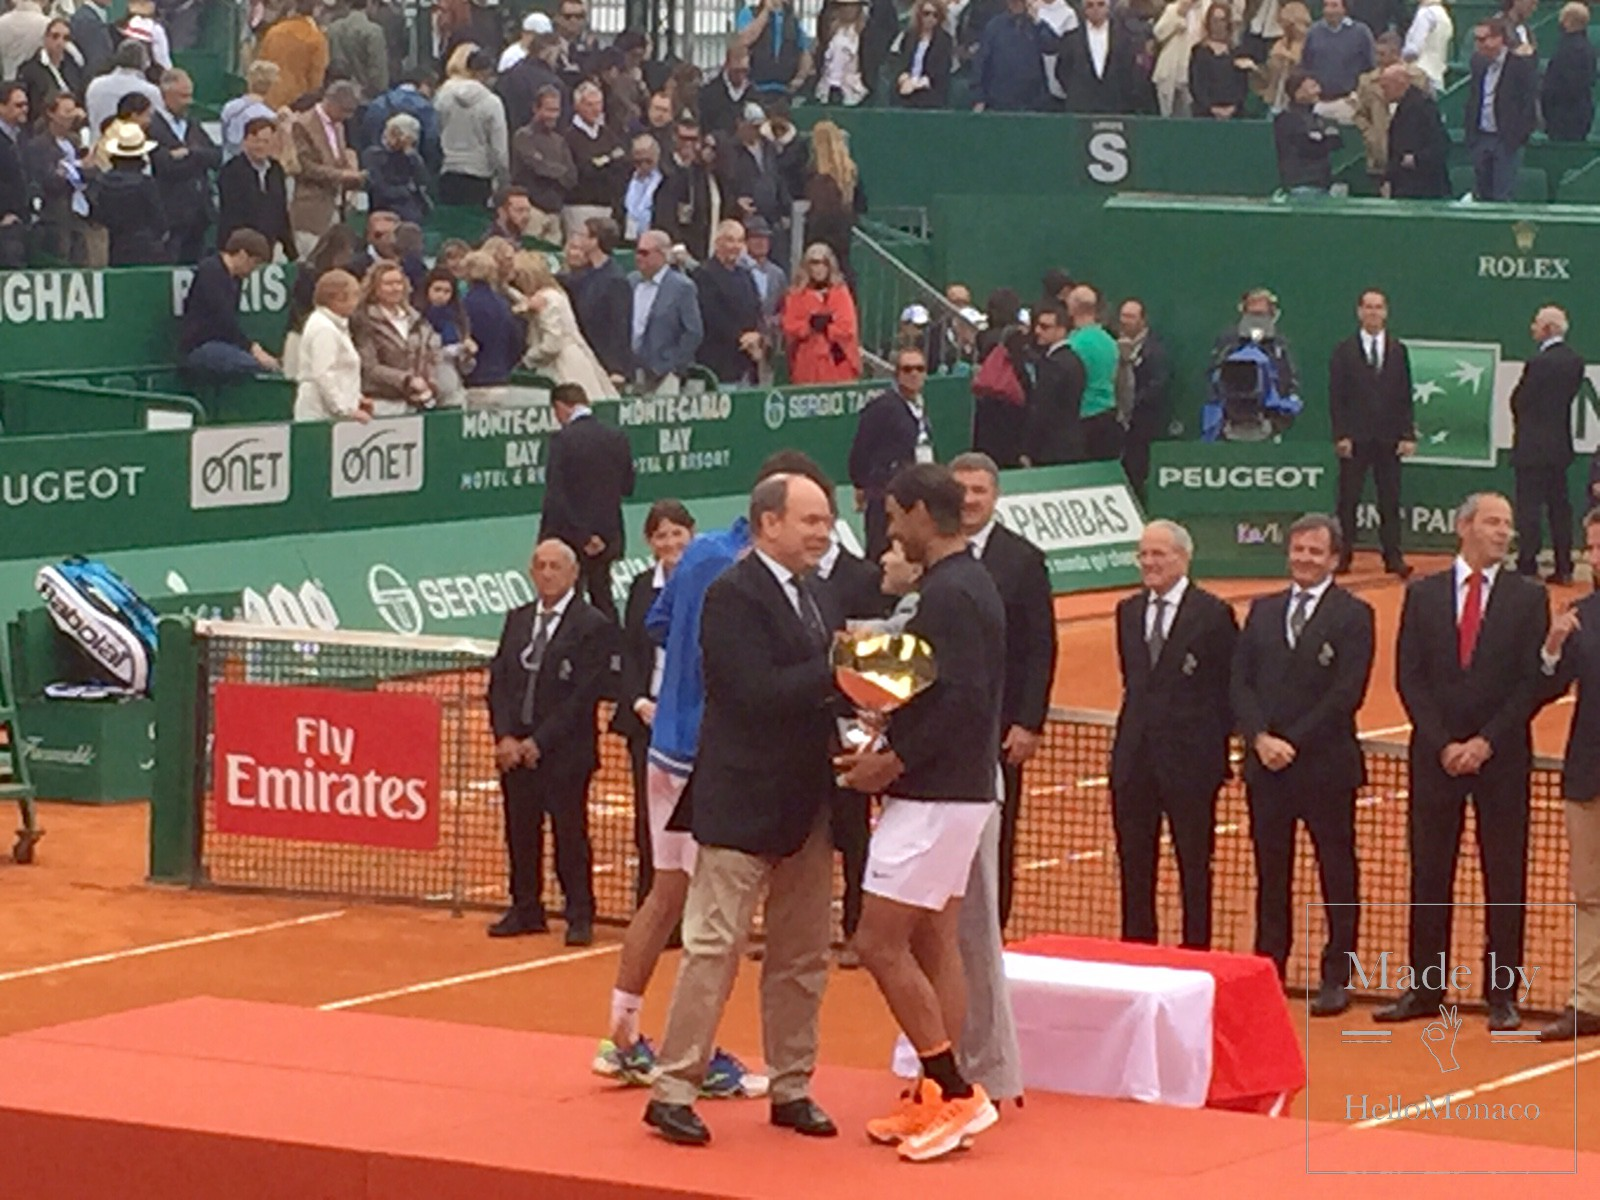 His Serene Highness Albert II, Sovereign Prince of Monaco presented Nadal with the trophy